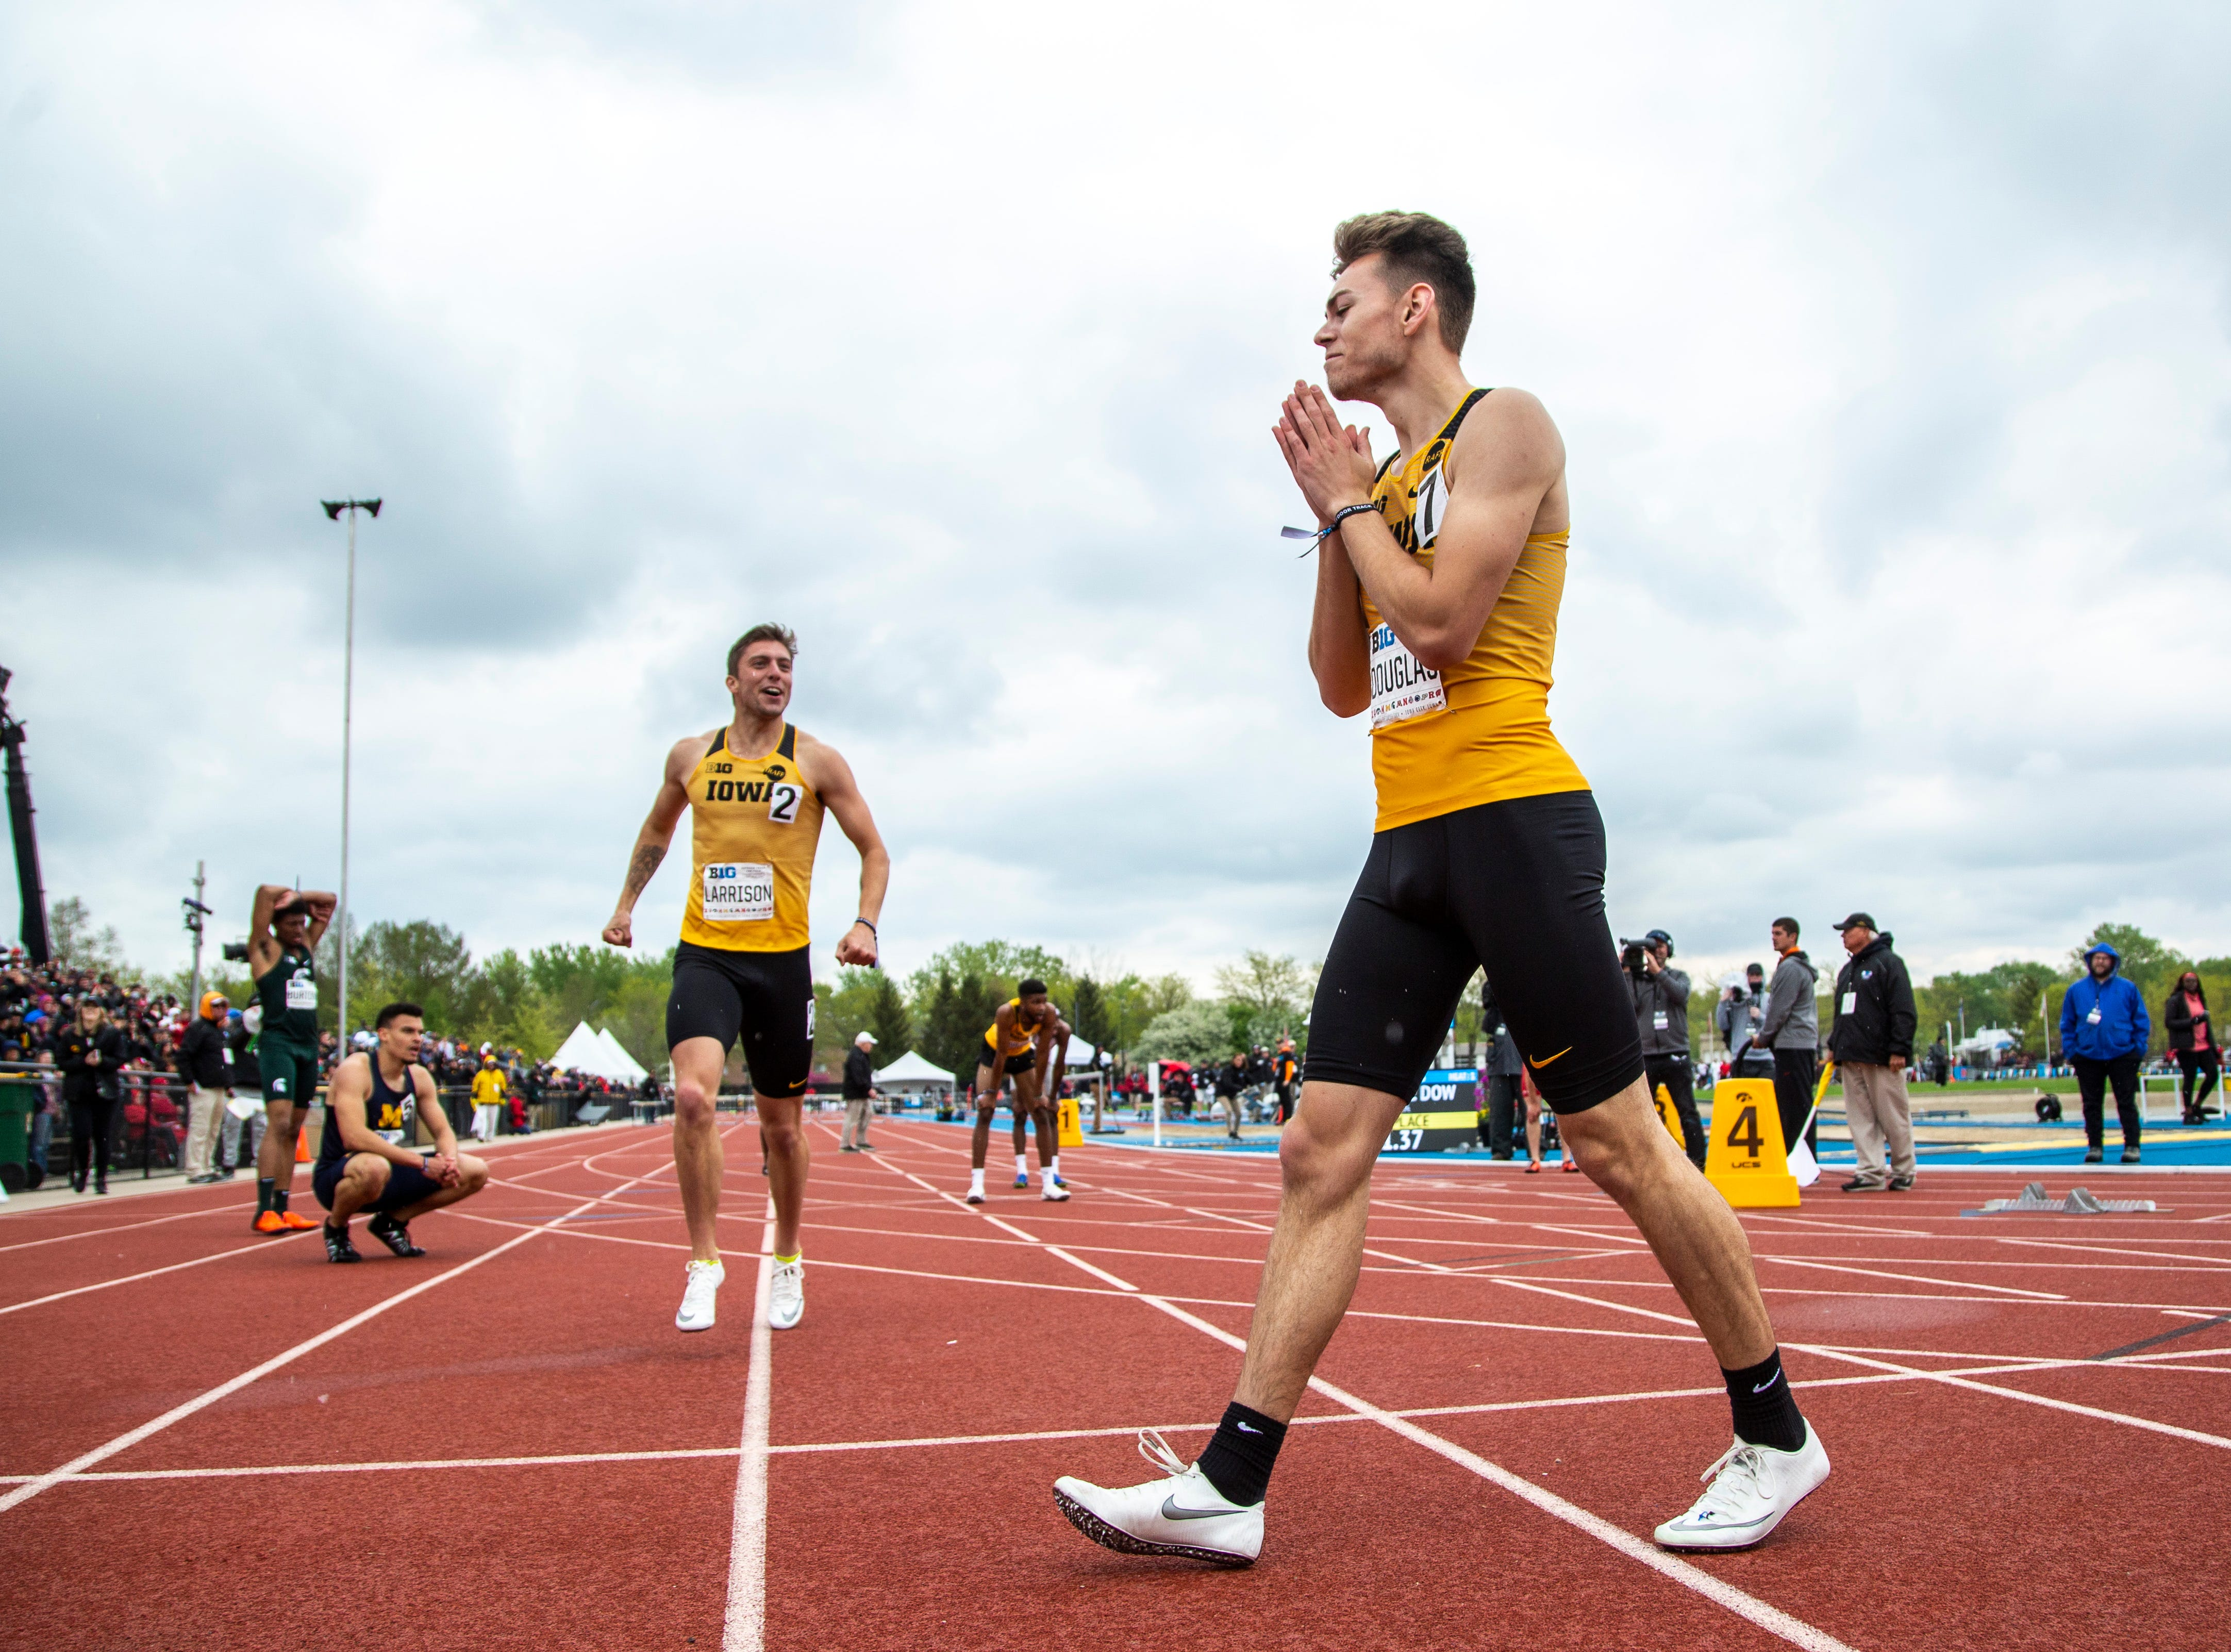 Iowa senior Chris Douglas celebrates after crossing the finish line in the 400 meter hurdles during the final day of Big Ten track and field outdoor championships, Sunday, May 12, 2019, at Francis X. Cretzmeyer Track on the University of Iowa campus in Iowa City, Iowa. Douglas finished first, with a time of 50.32, a career best.